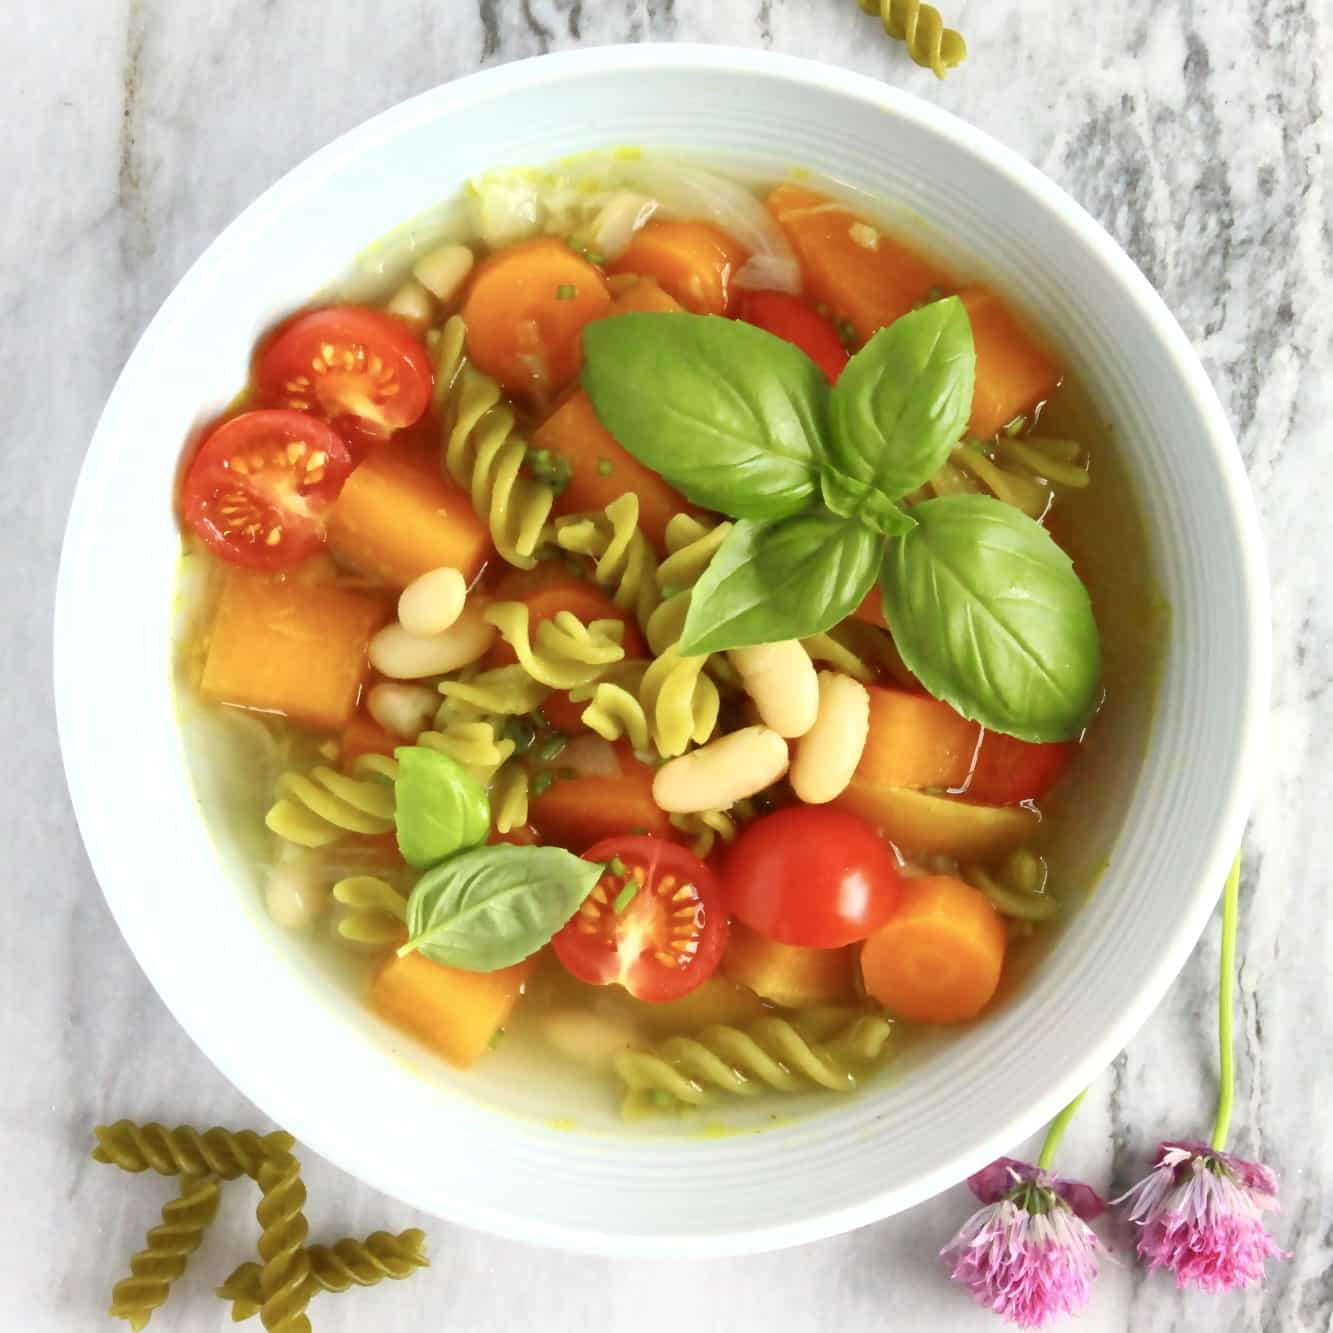 18 Vegetarian One-Pot Pasta Recipes for Busy Weeknights: Vegan Pea Pasta Minestrone Soup